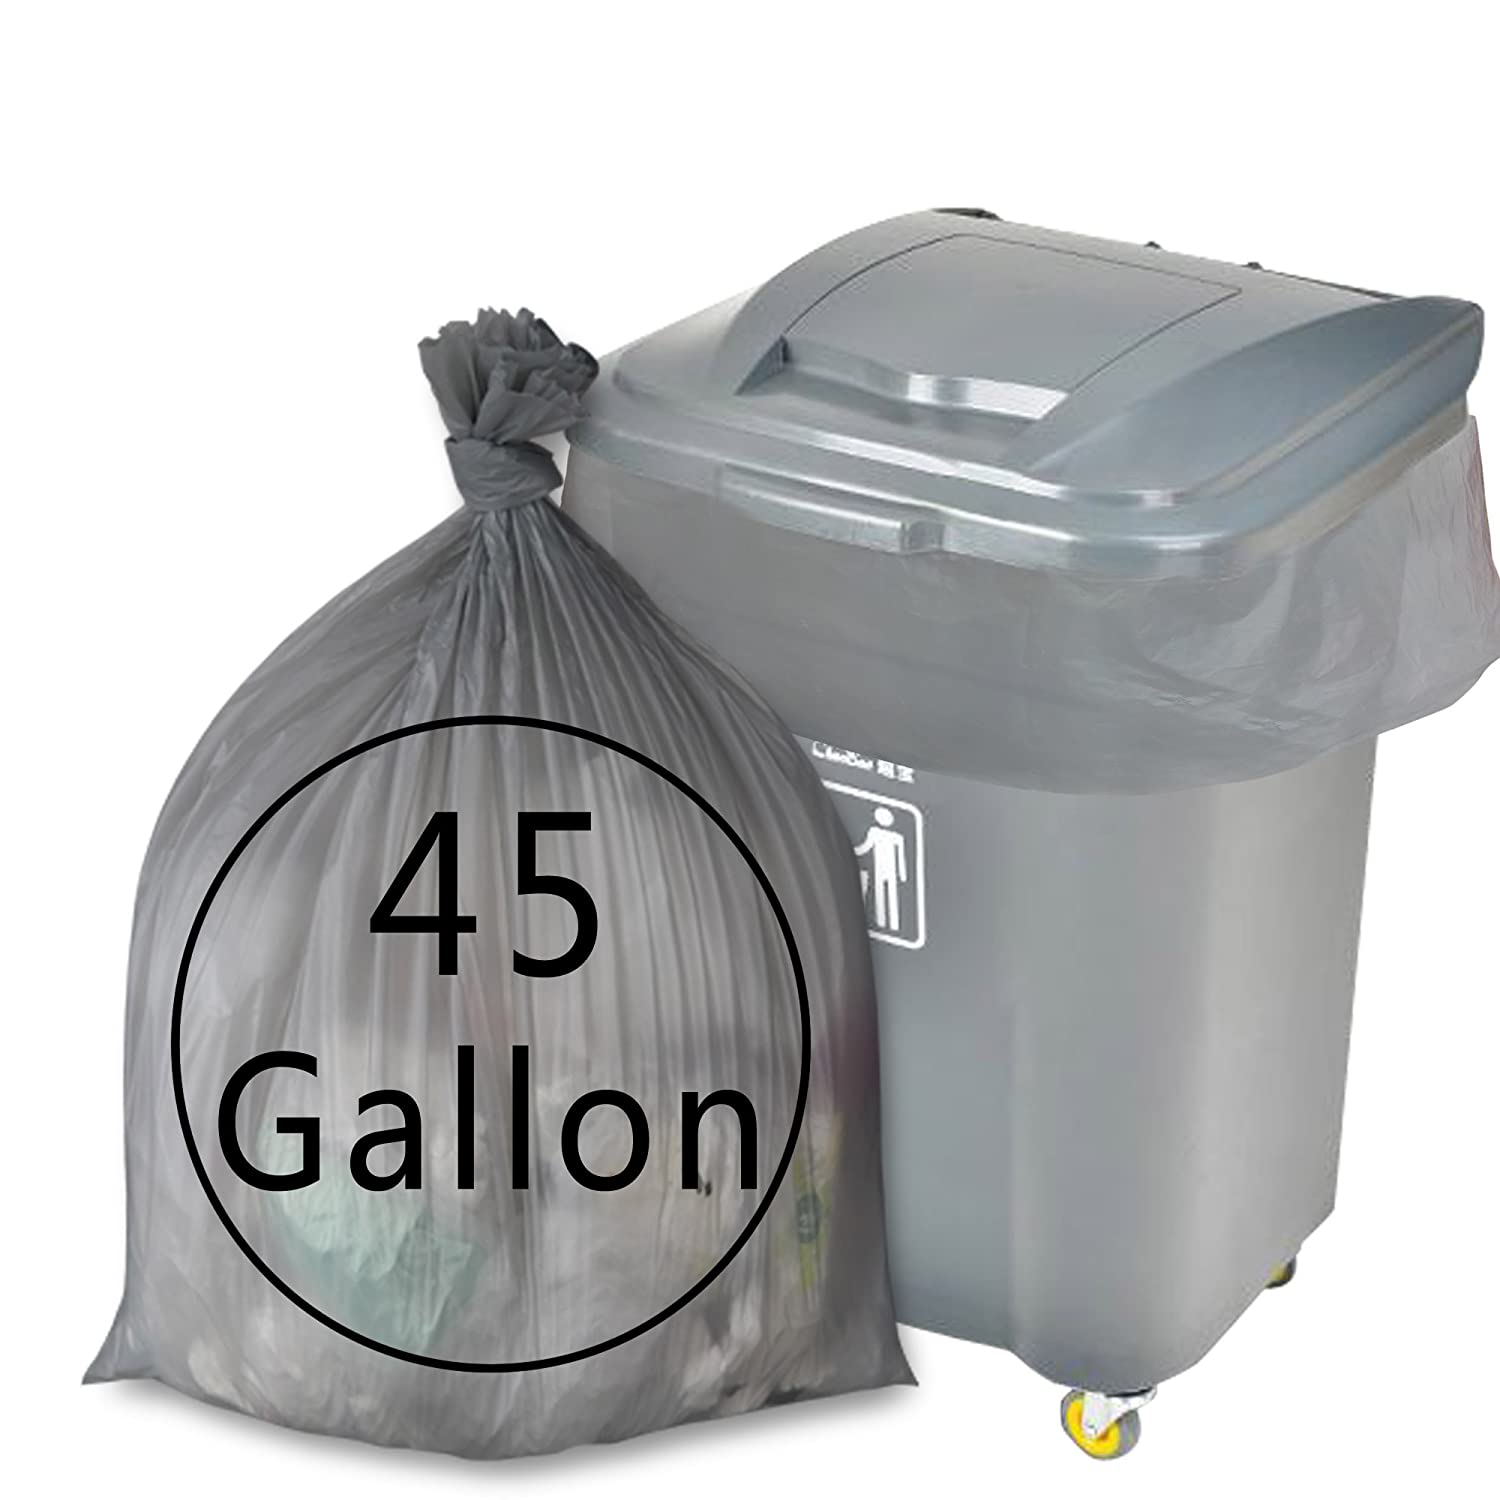 Anbers 30 Gallon Large Trash Bags, 70 Counts Anbers135